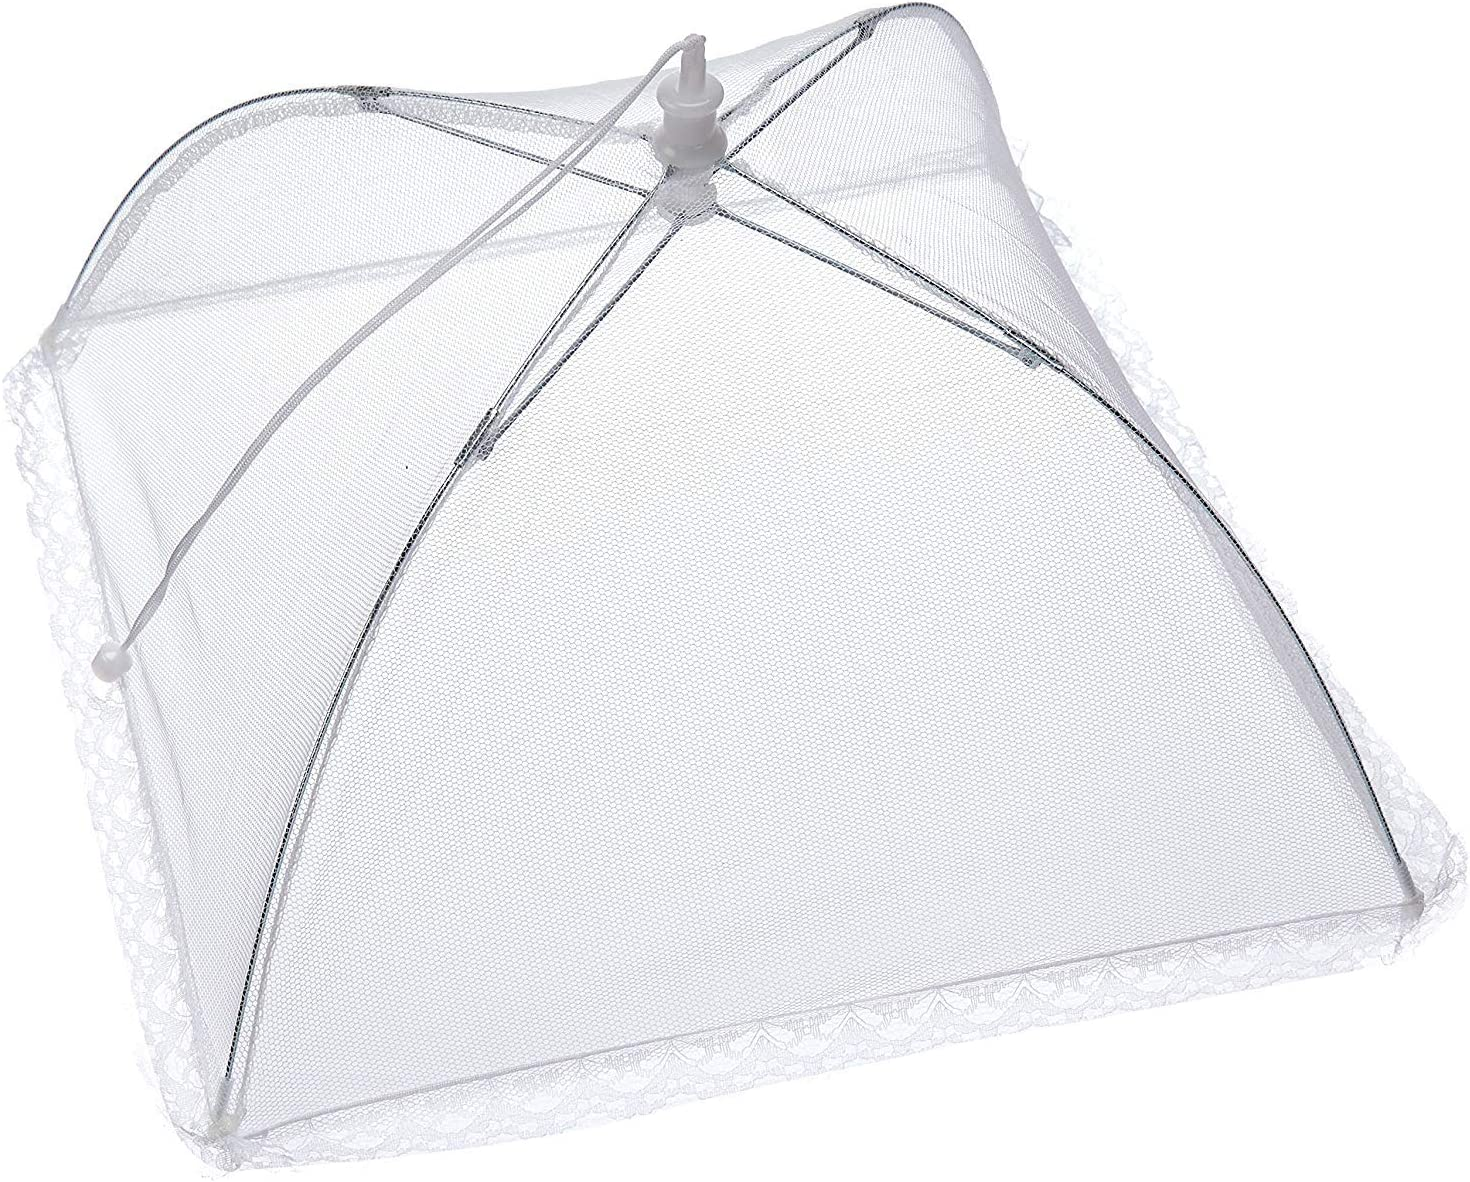 Chef Craft Food Cover Umbrella Tent, 12 Inch (Pack of 1)